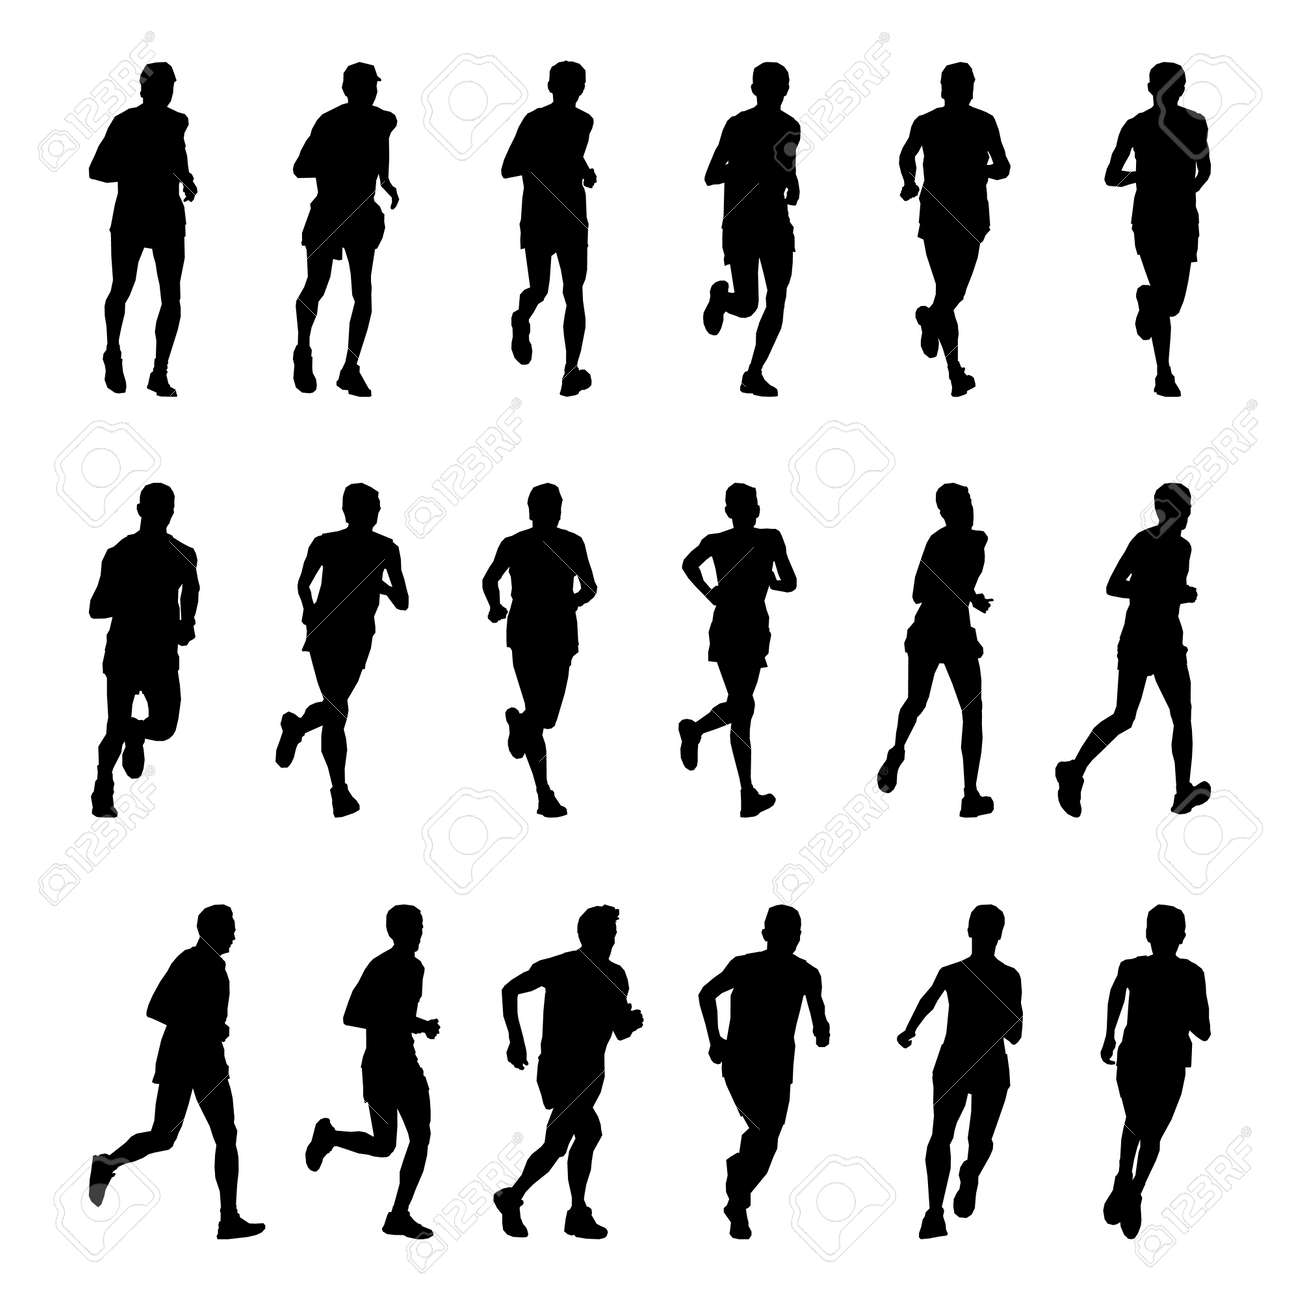 Vector drawing running athletes. Silhouettes on white background - 158521489